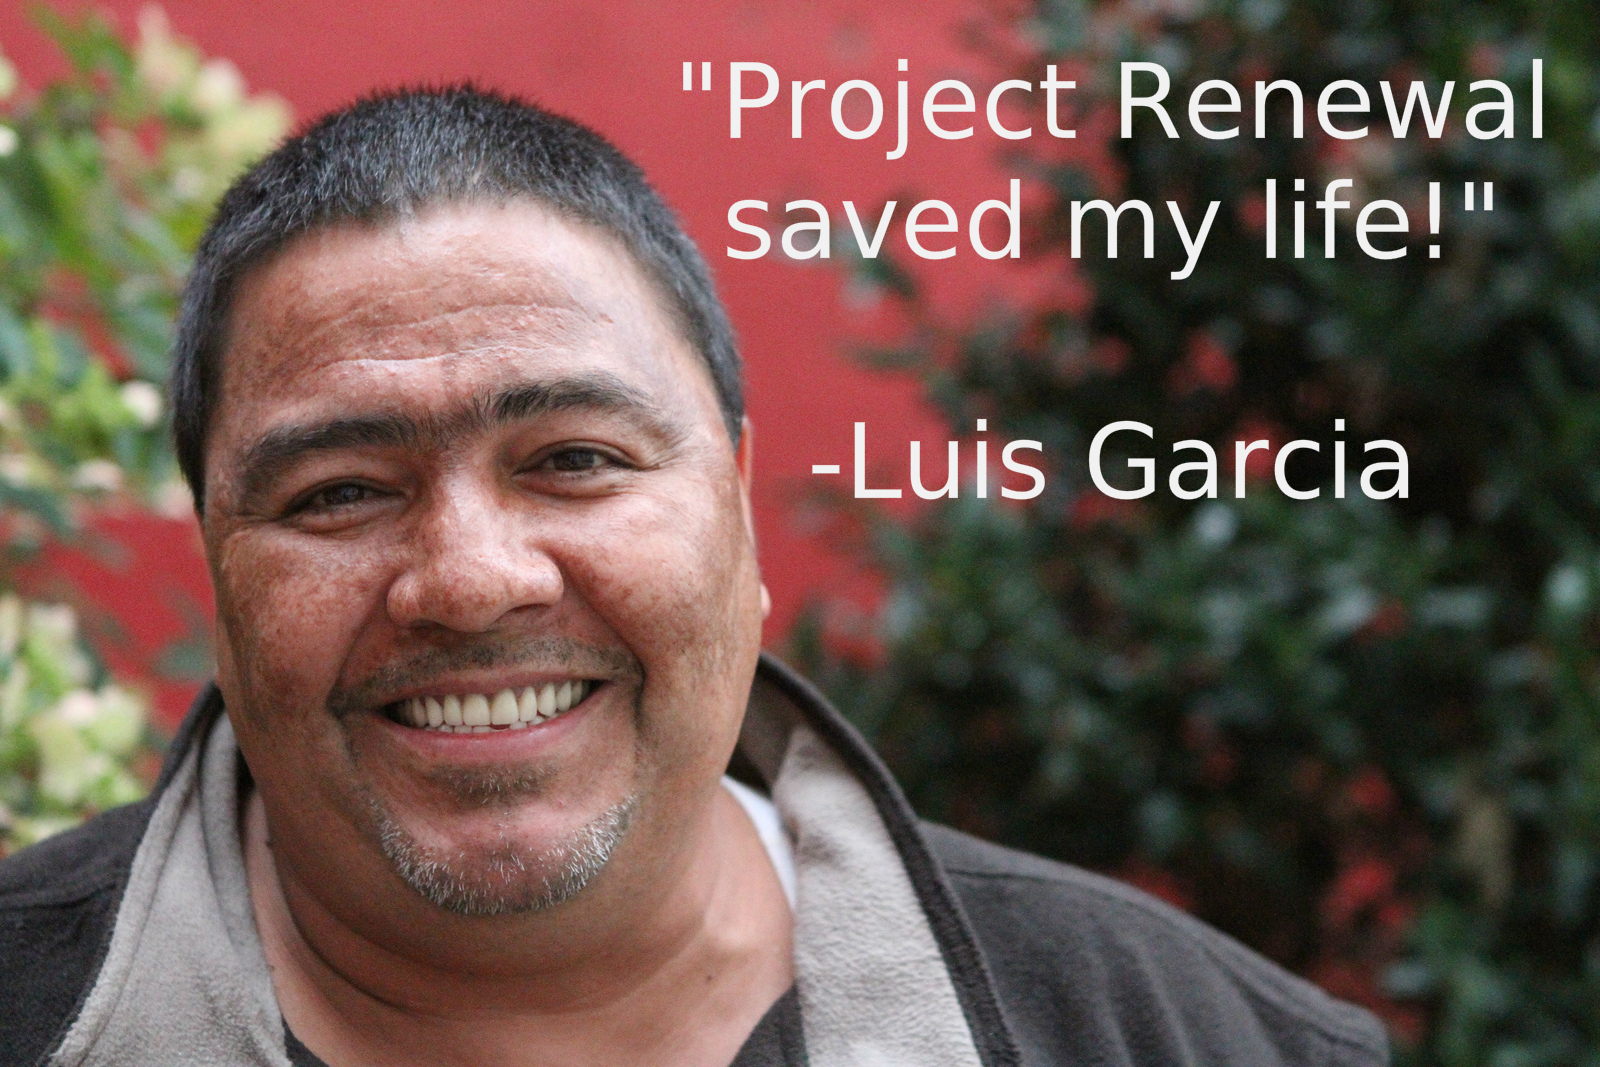 Click to read more stories of the New Yorkers who have renewed their lives and reclaimed hope!